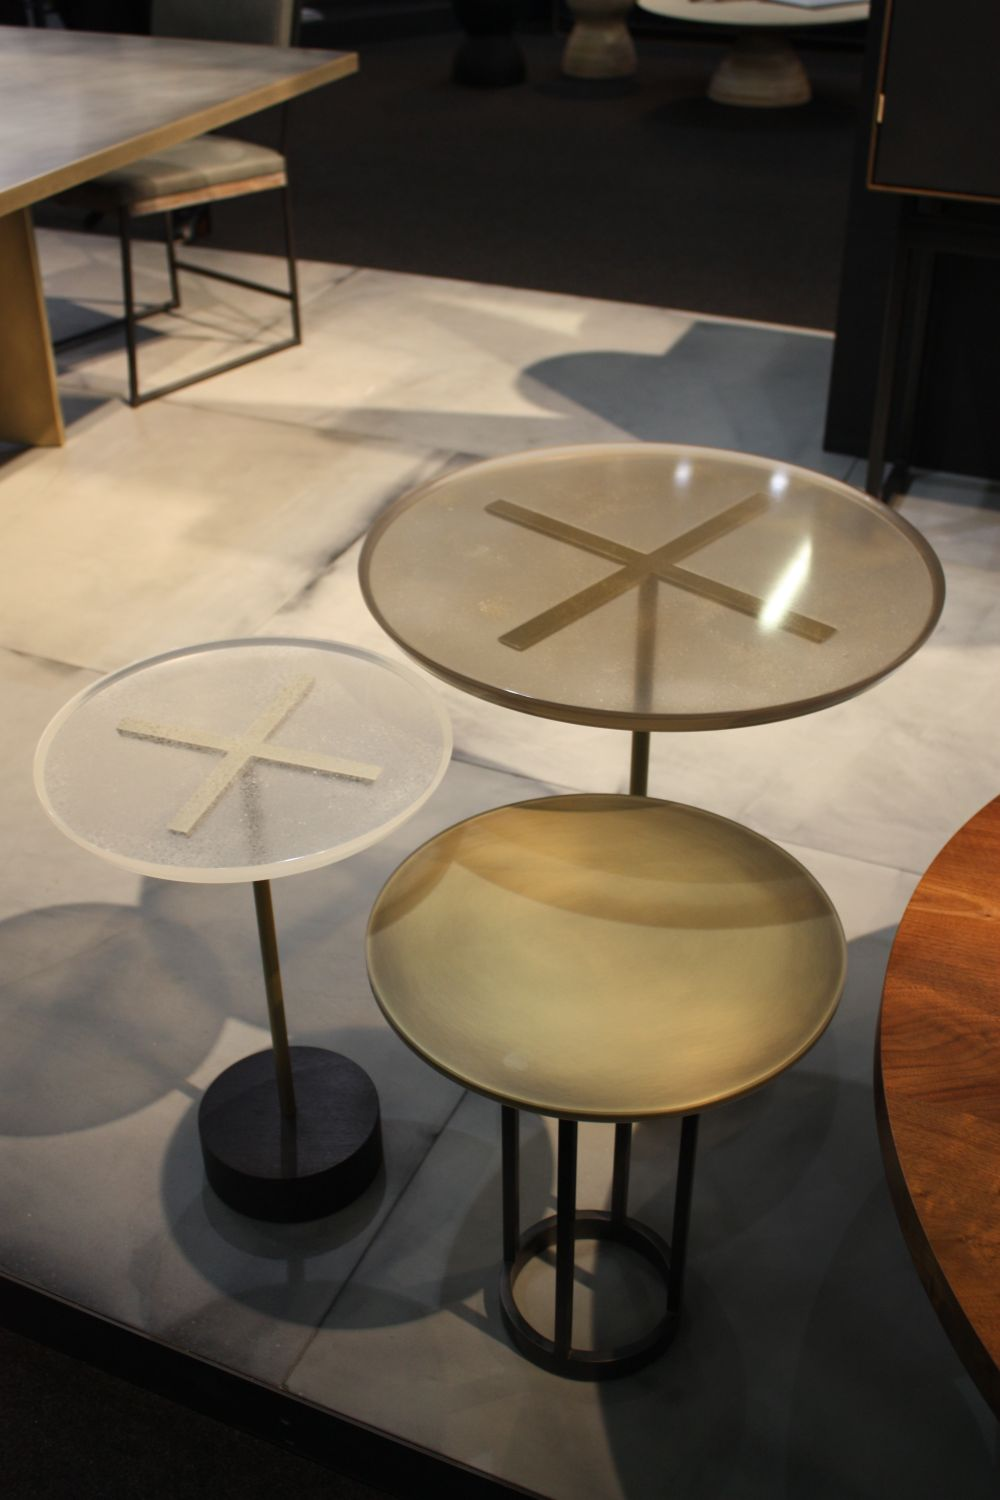 X marka the spot - in this case the center of the table's glass top